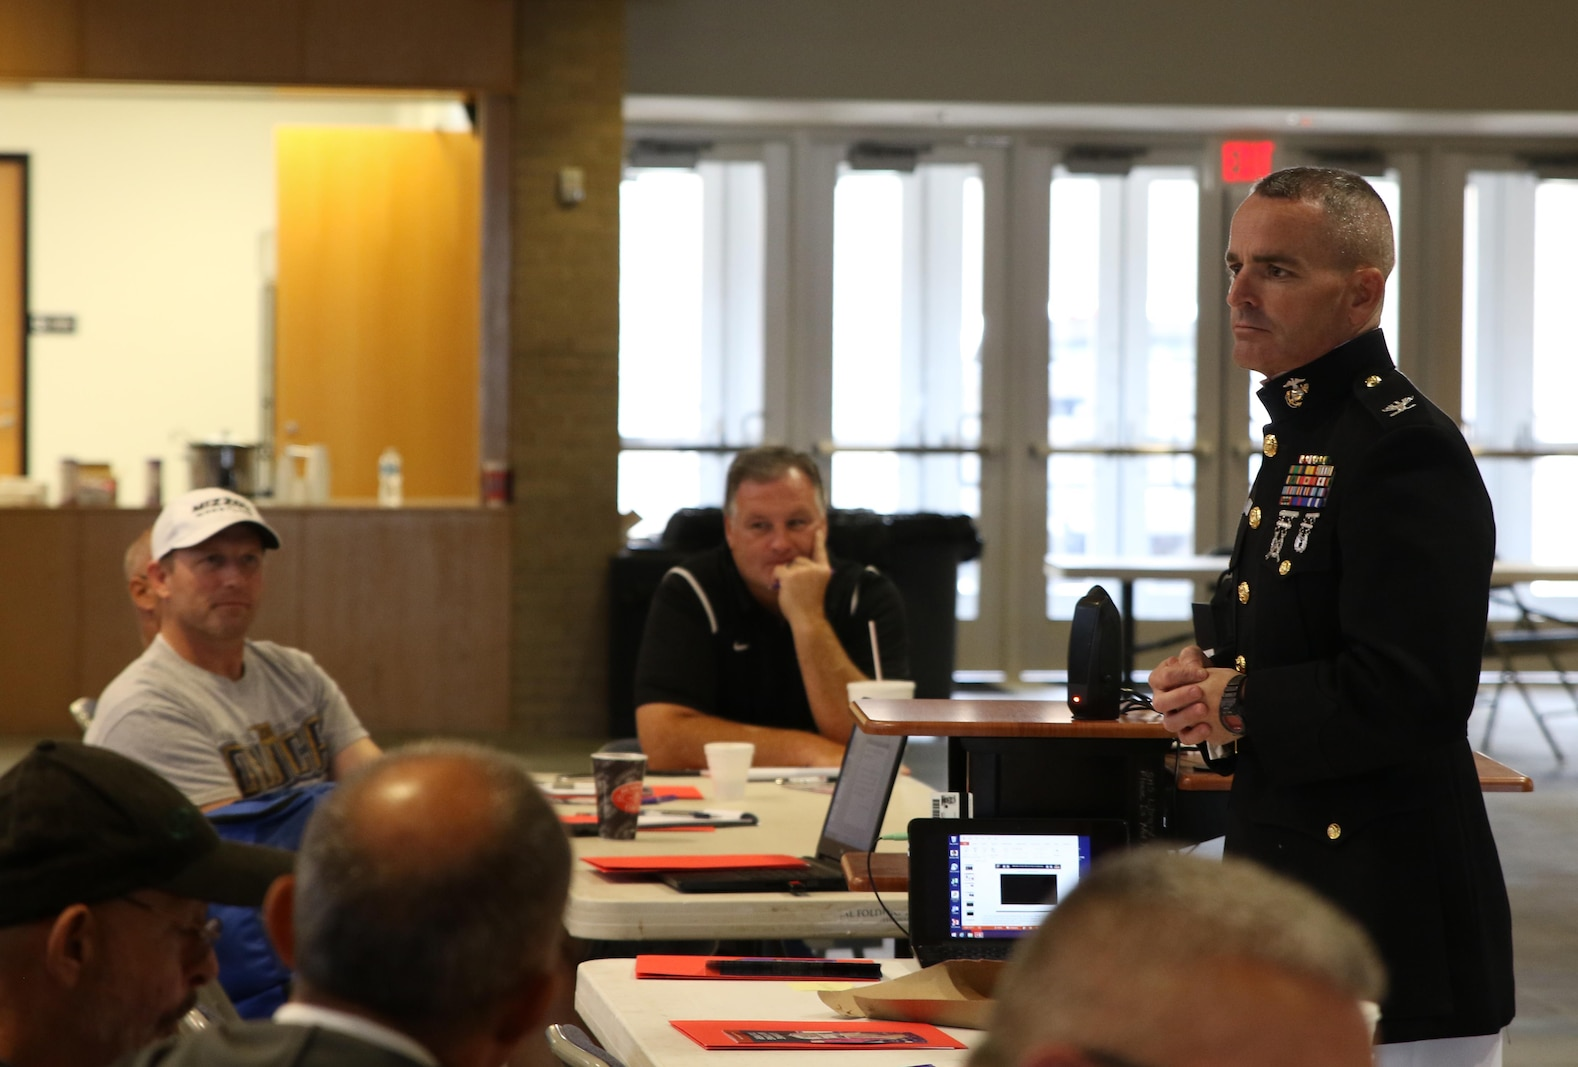 Colonel David Fallon, the 9th Marine Corps District commanding officer, speaks with wrestling coaches during the National Wrestling Coaches Association's Leadership Academy at Shawnee High School, Oct. 19. Fallon spoke to coaches about traits Marines and wrestlers share that make them stand out in society. (Official U.S. Marine photo by Sgt. Marcela Diazdeleon)